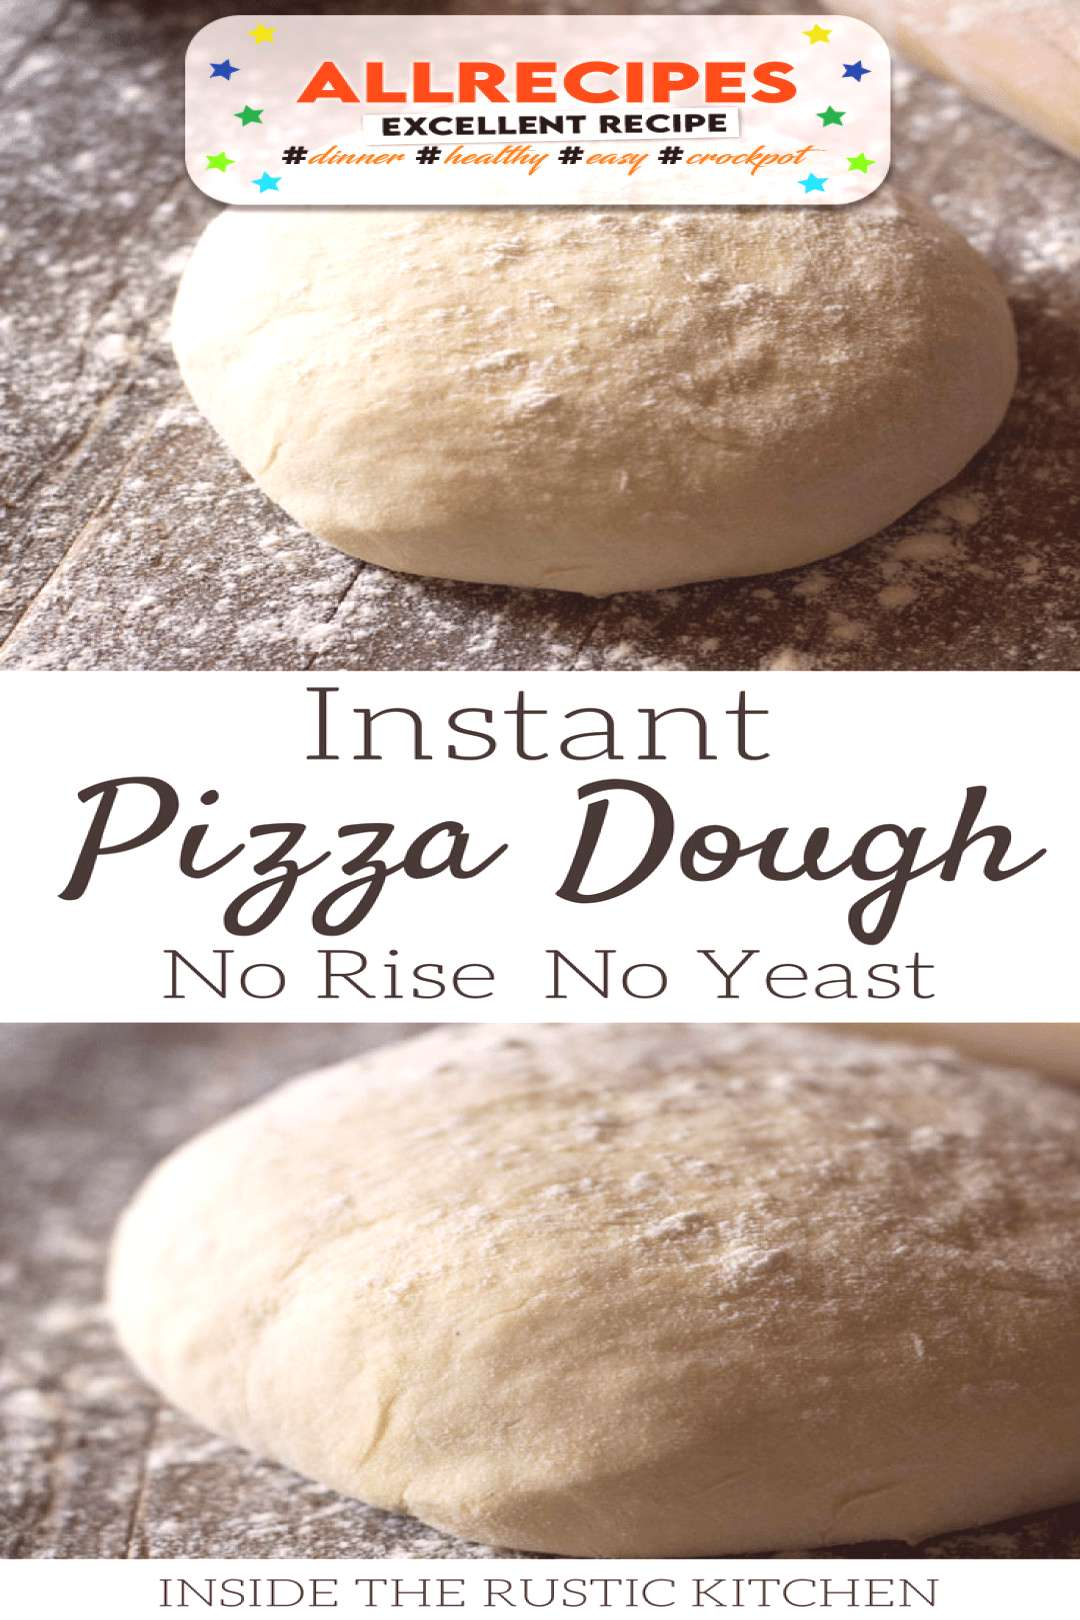 Instant Pizza Dough - No Rise No Yeast - - A thin and crispy instant pizza dough recipe that has no